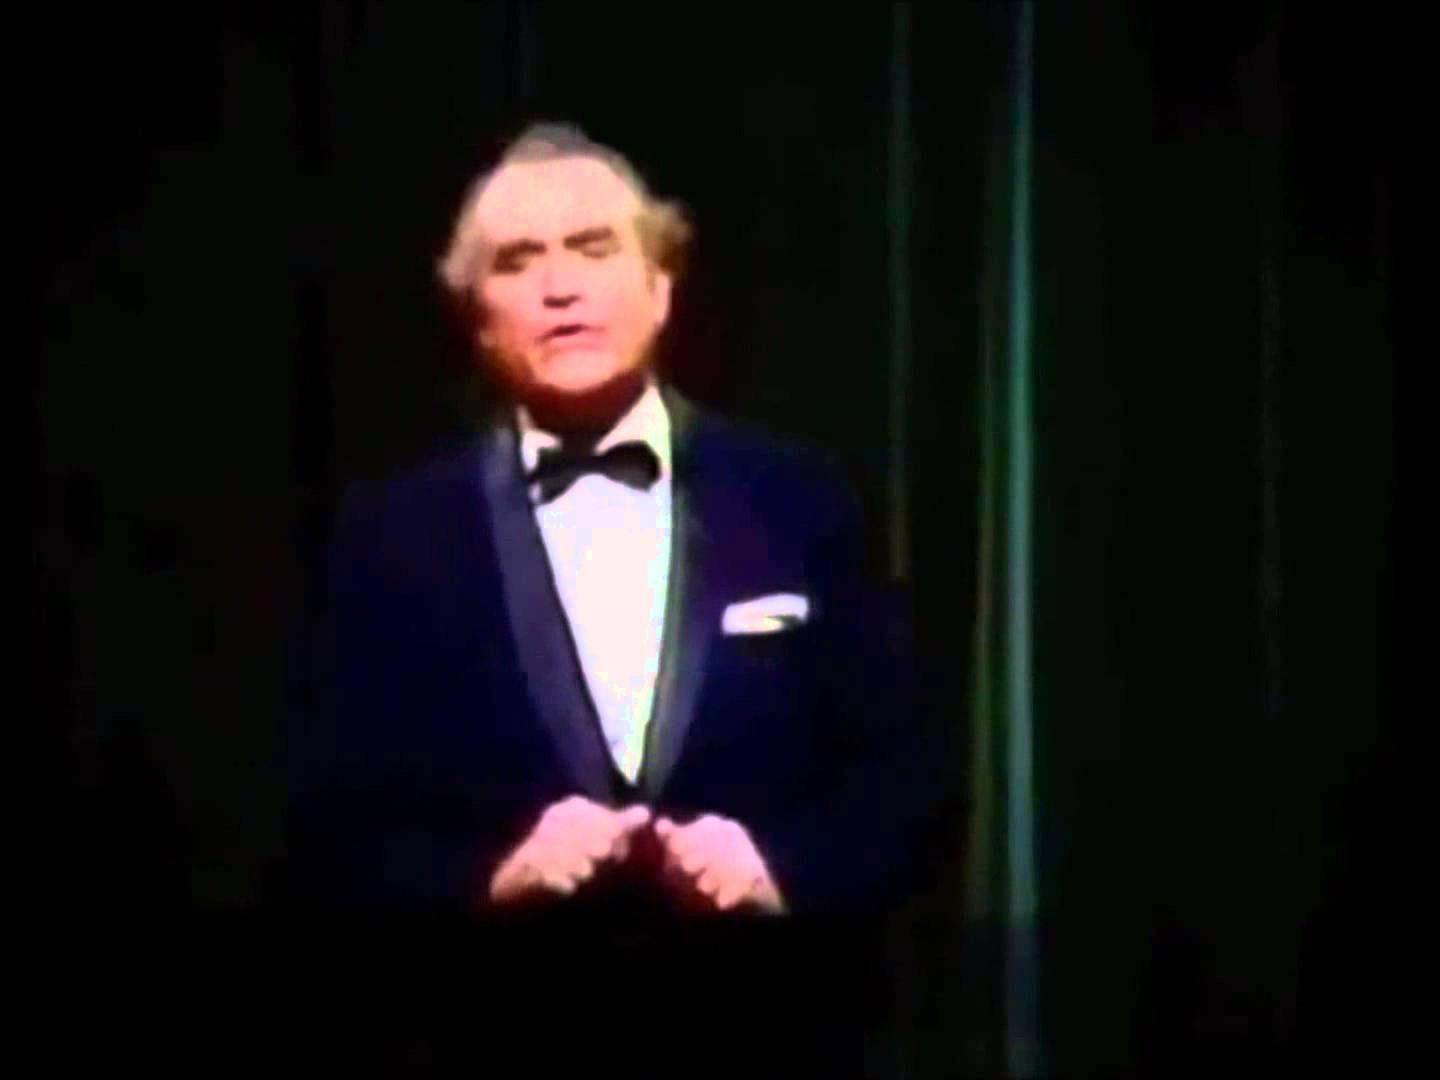 Red Skelton explains the Pledge of Allegiance  Watch and Share - you'll be inspired!